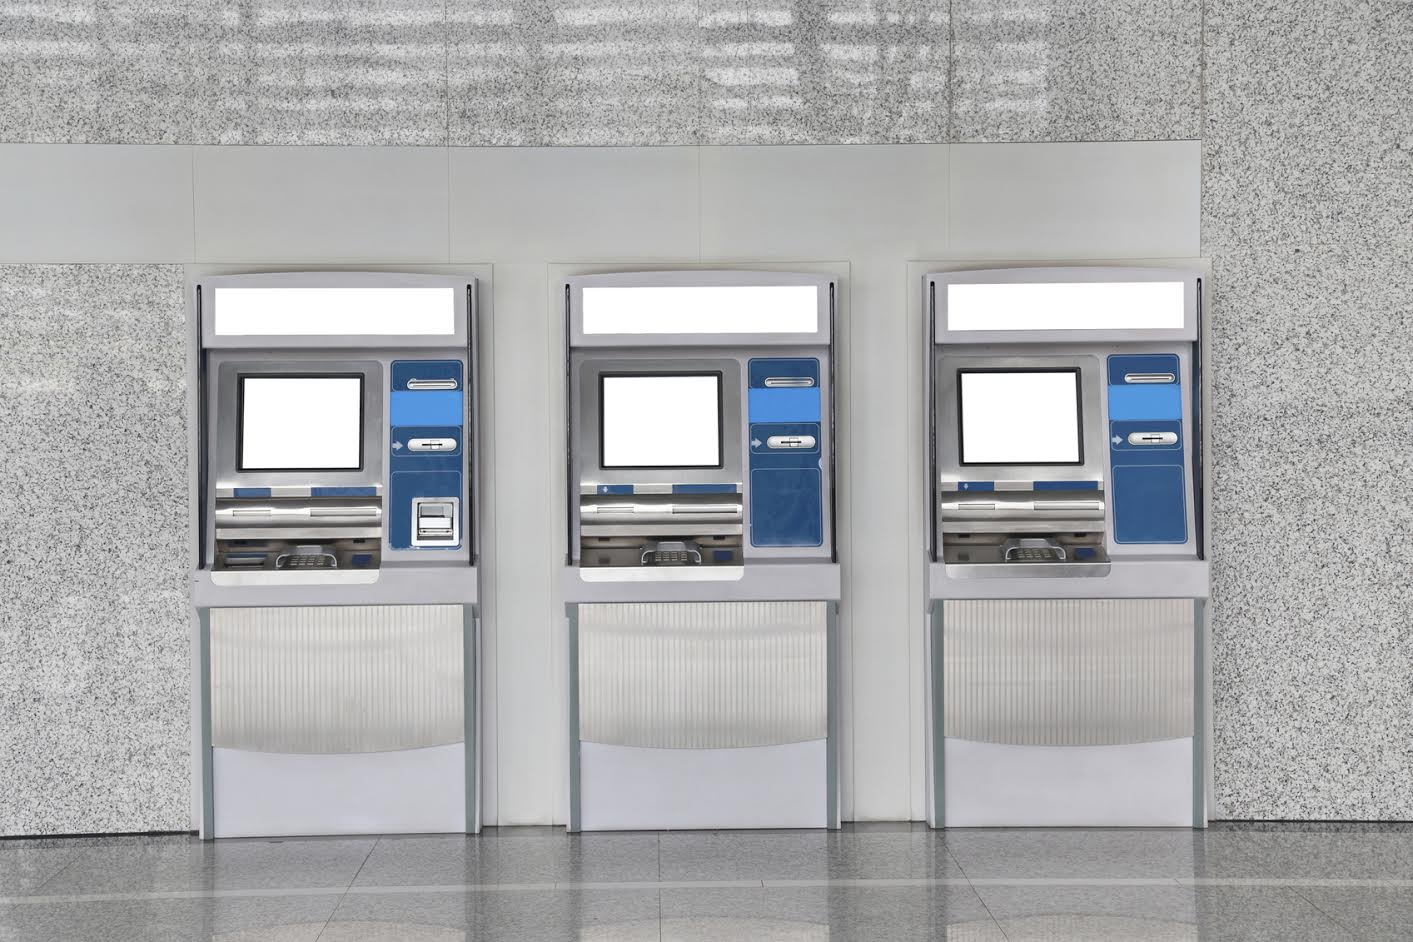 ATM cash machines